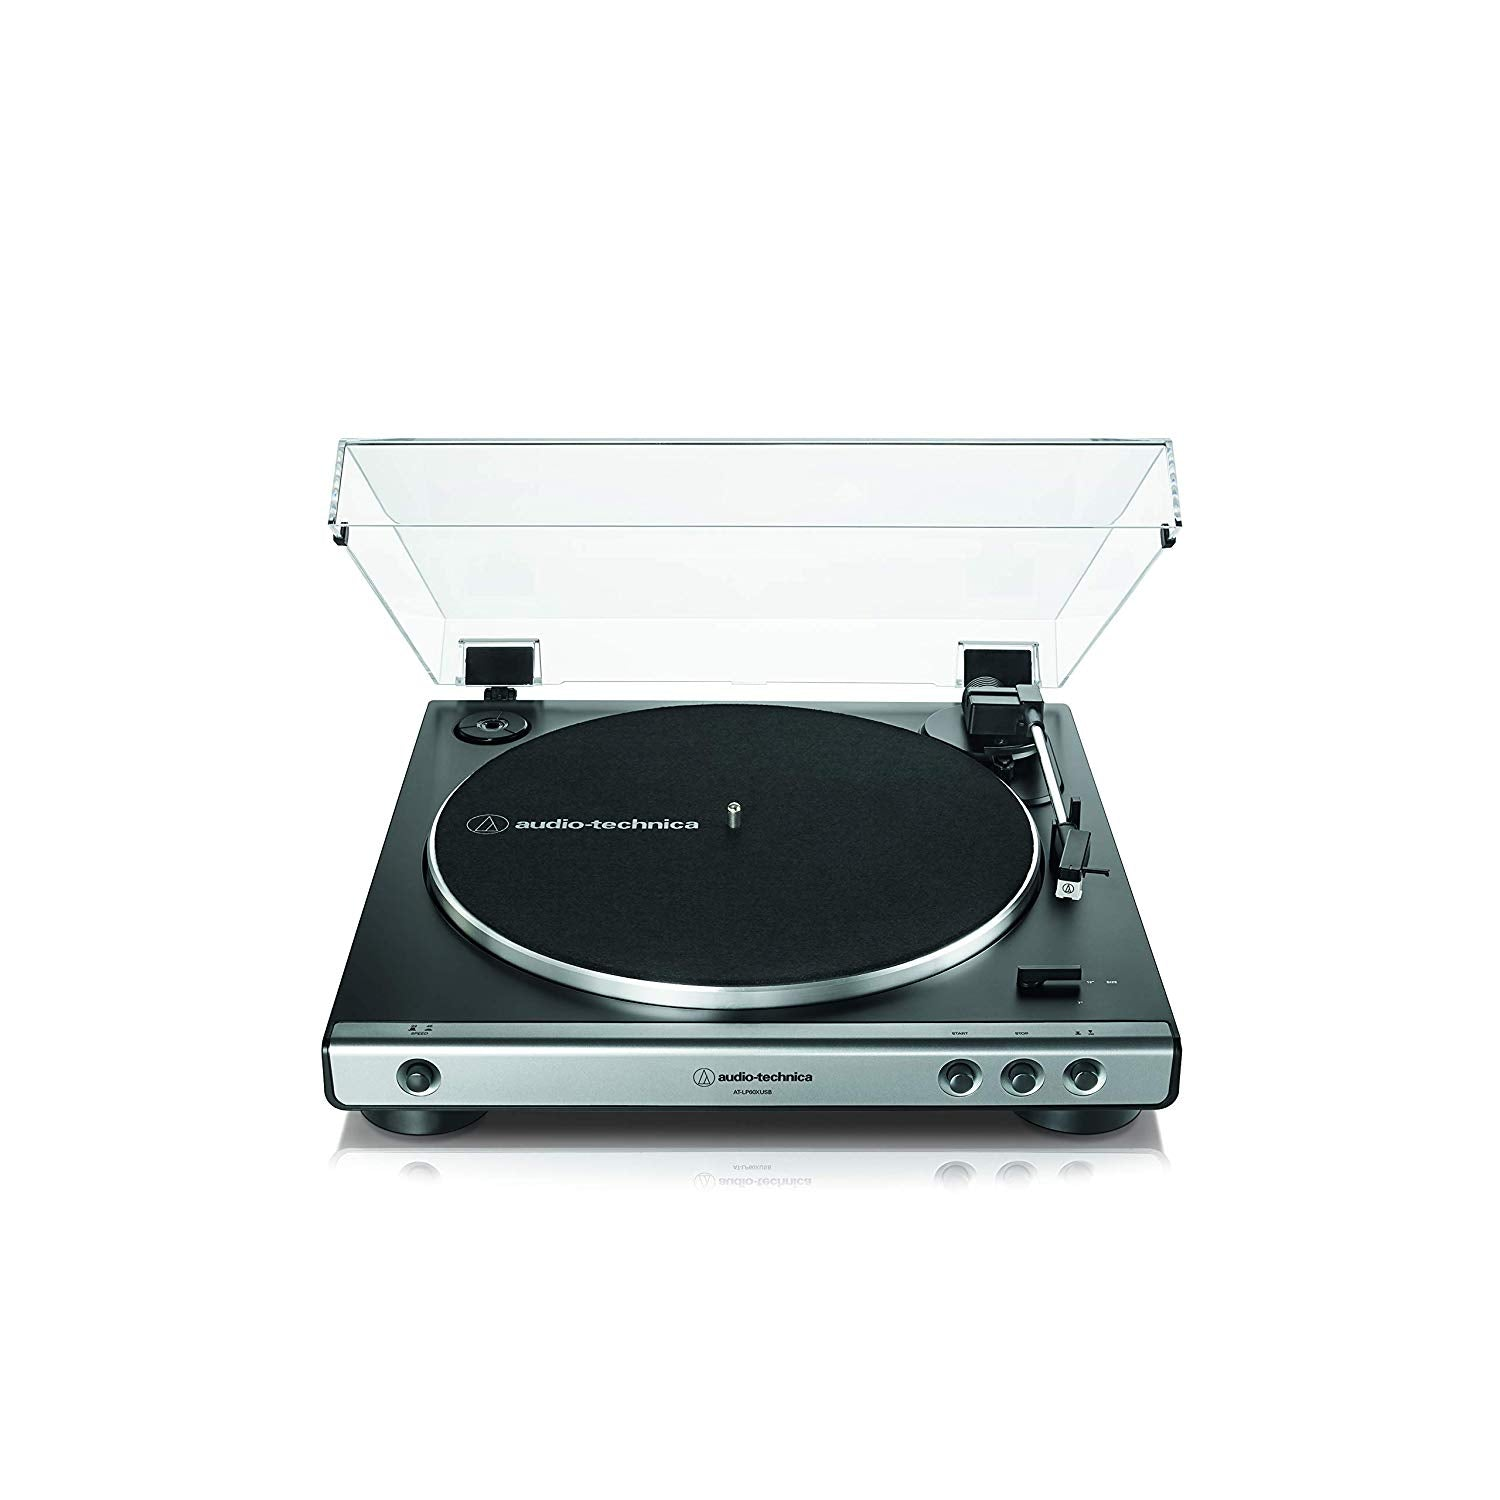 Audio Technica 60xusb Turntable [Tech & Turntables]